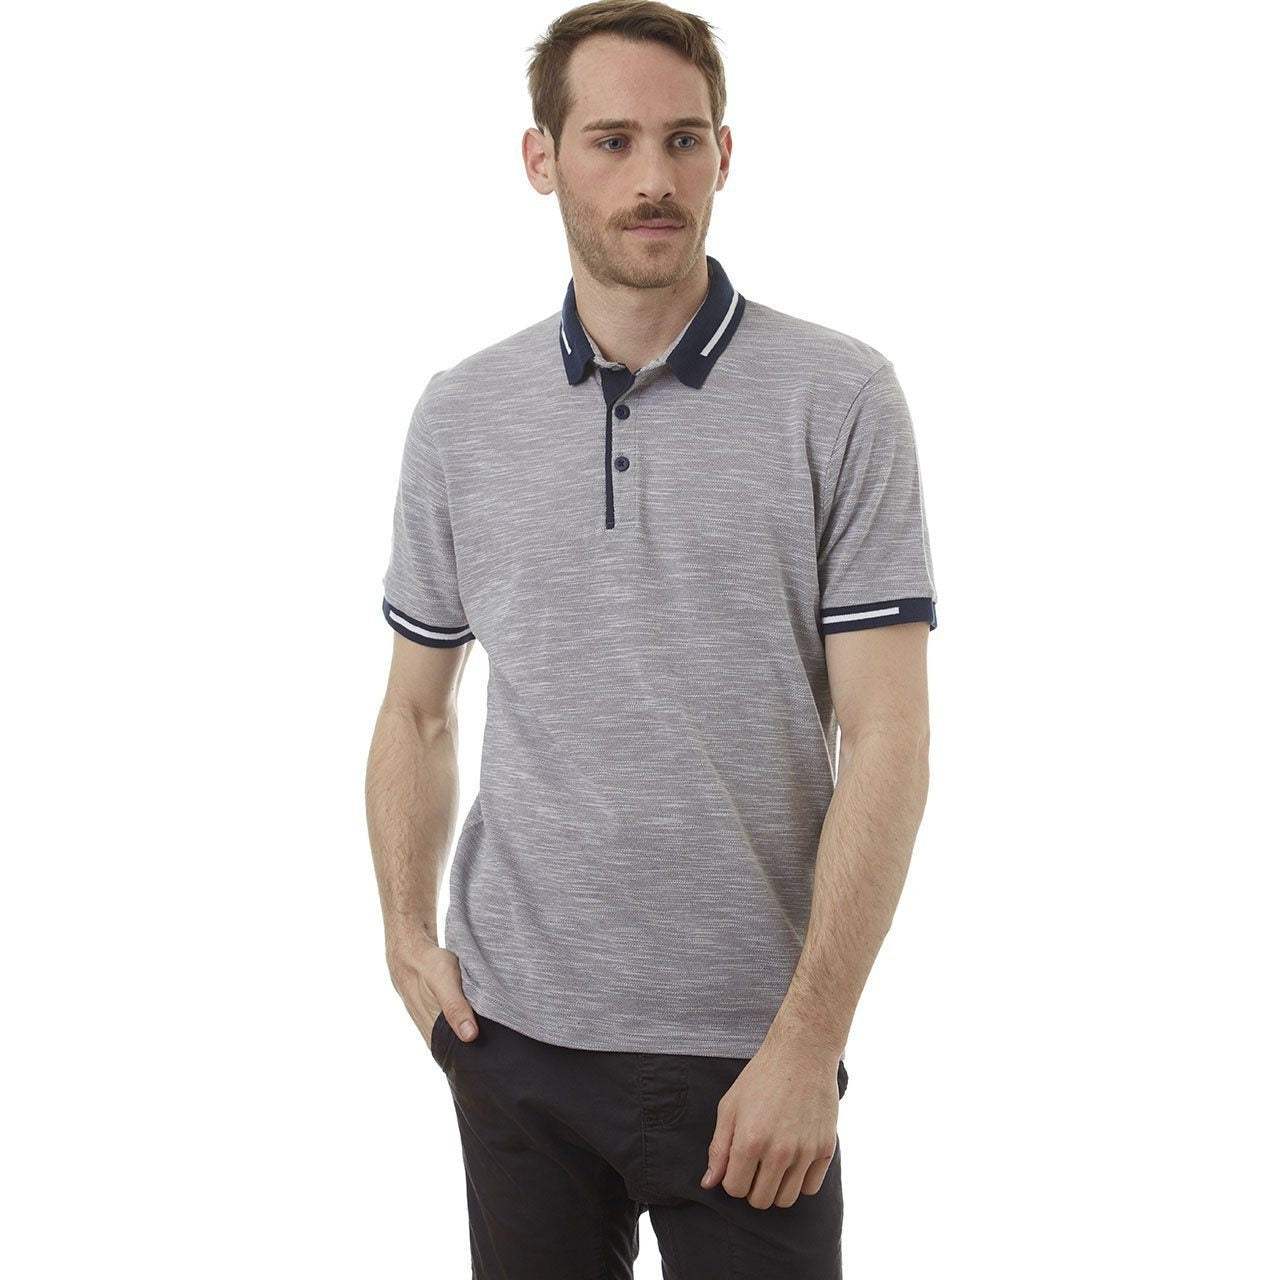 mens polo shirt top short sleeve designer mens clothes lord owens